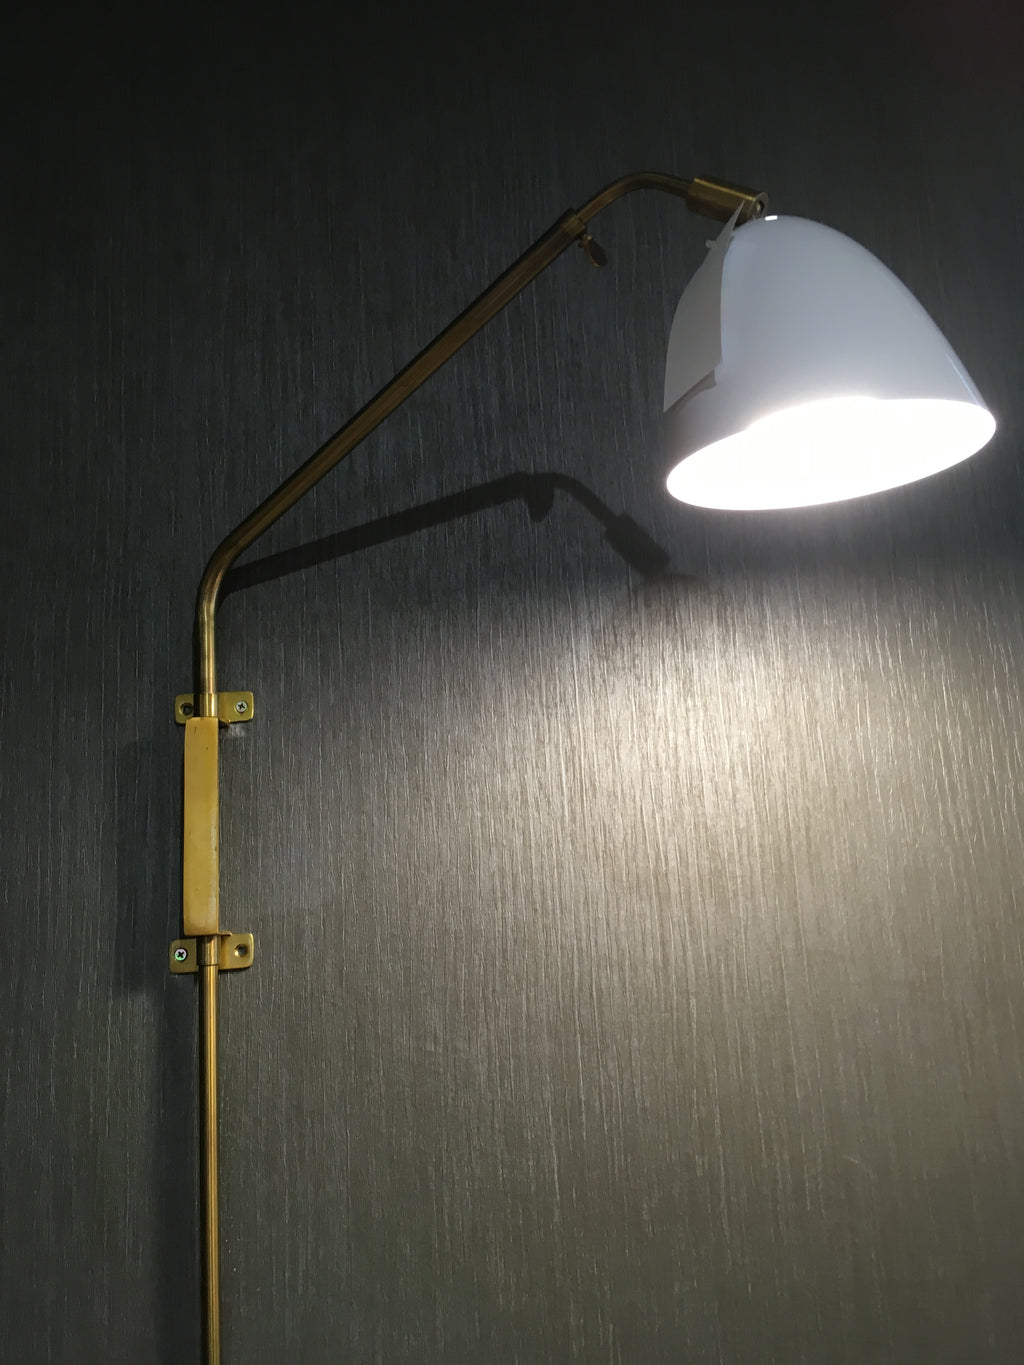 White shade on Brass wall Lamp